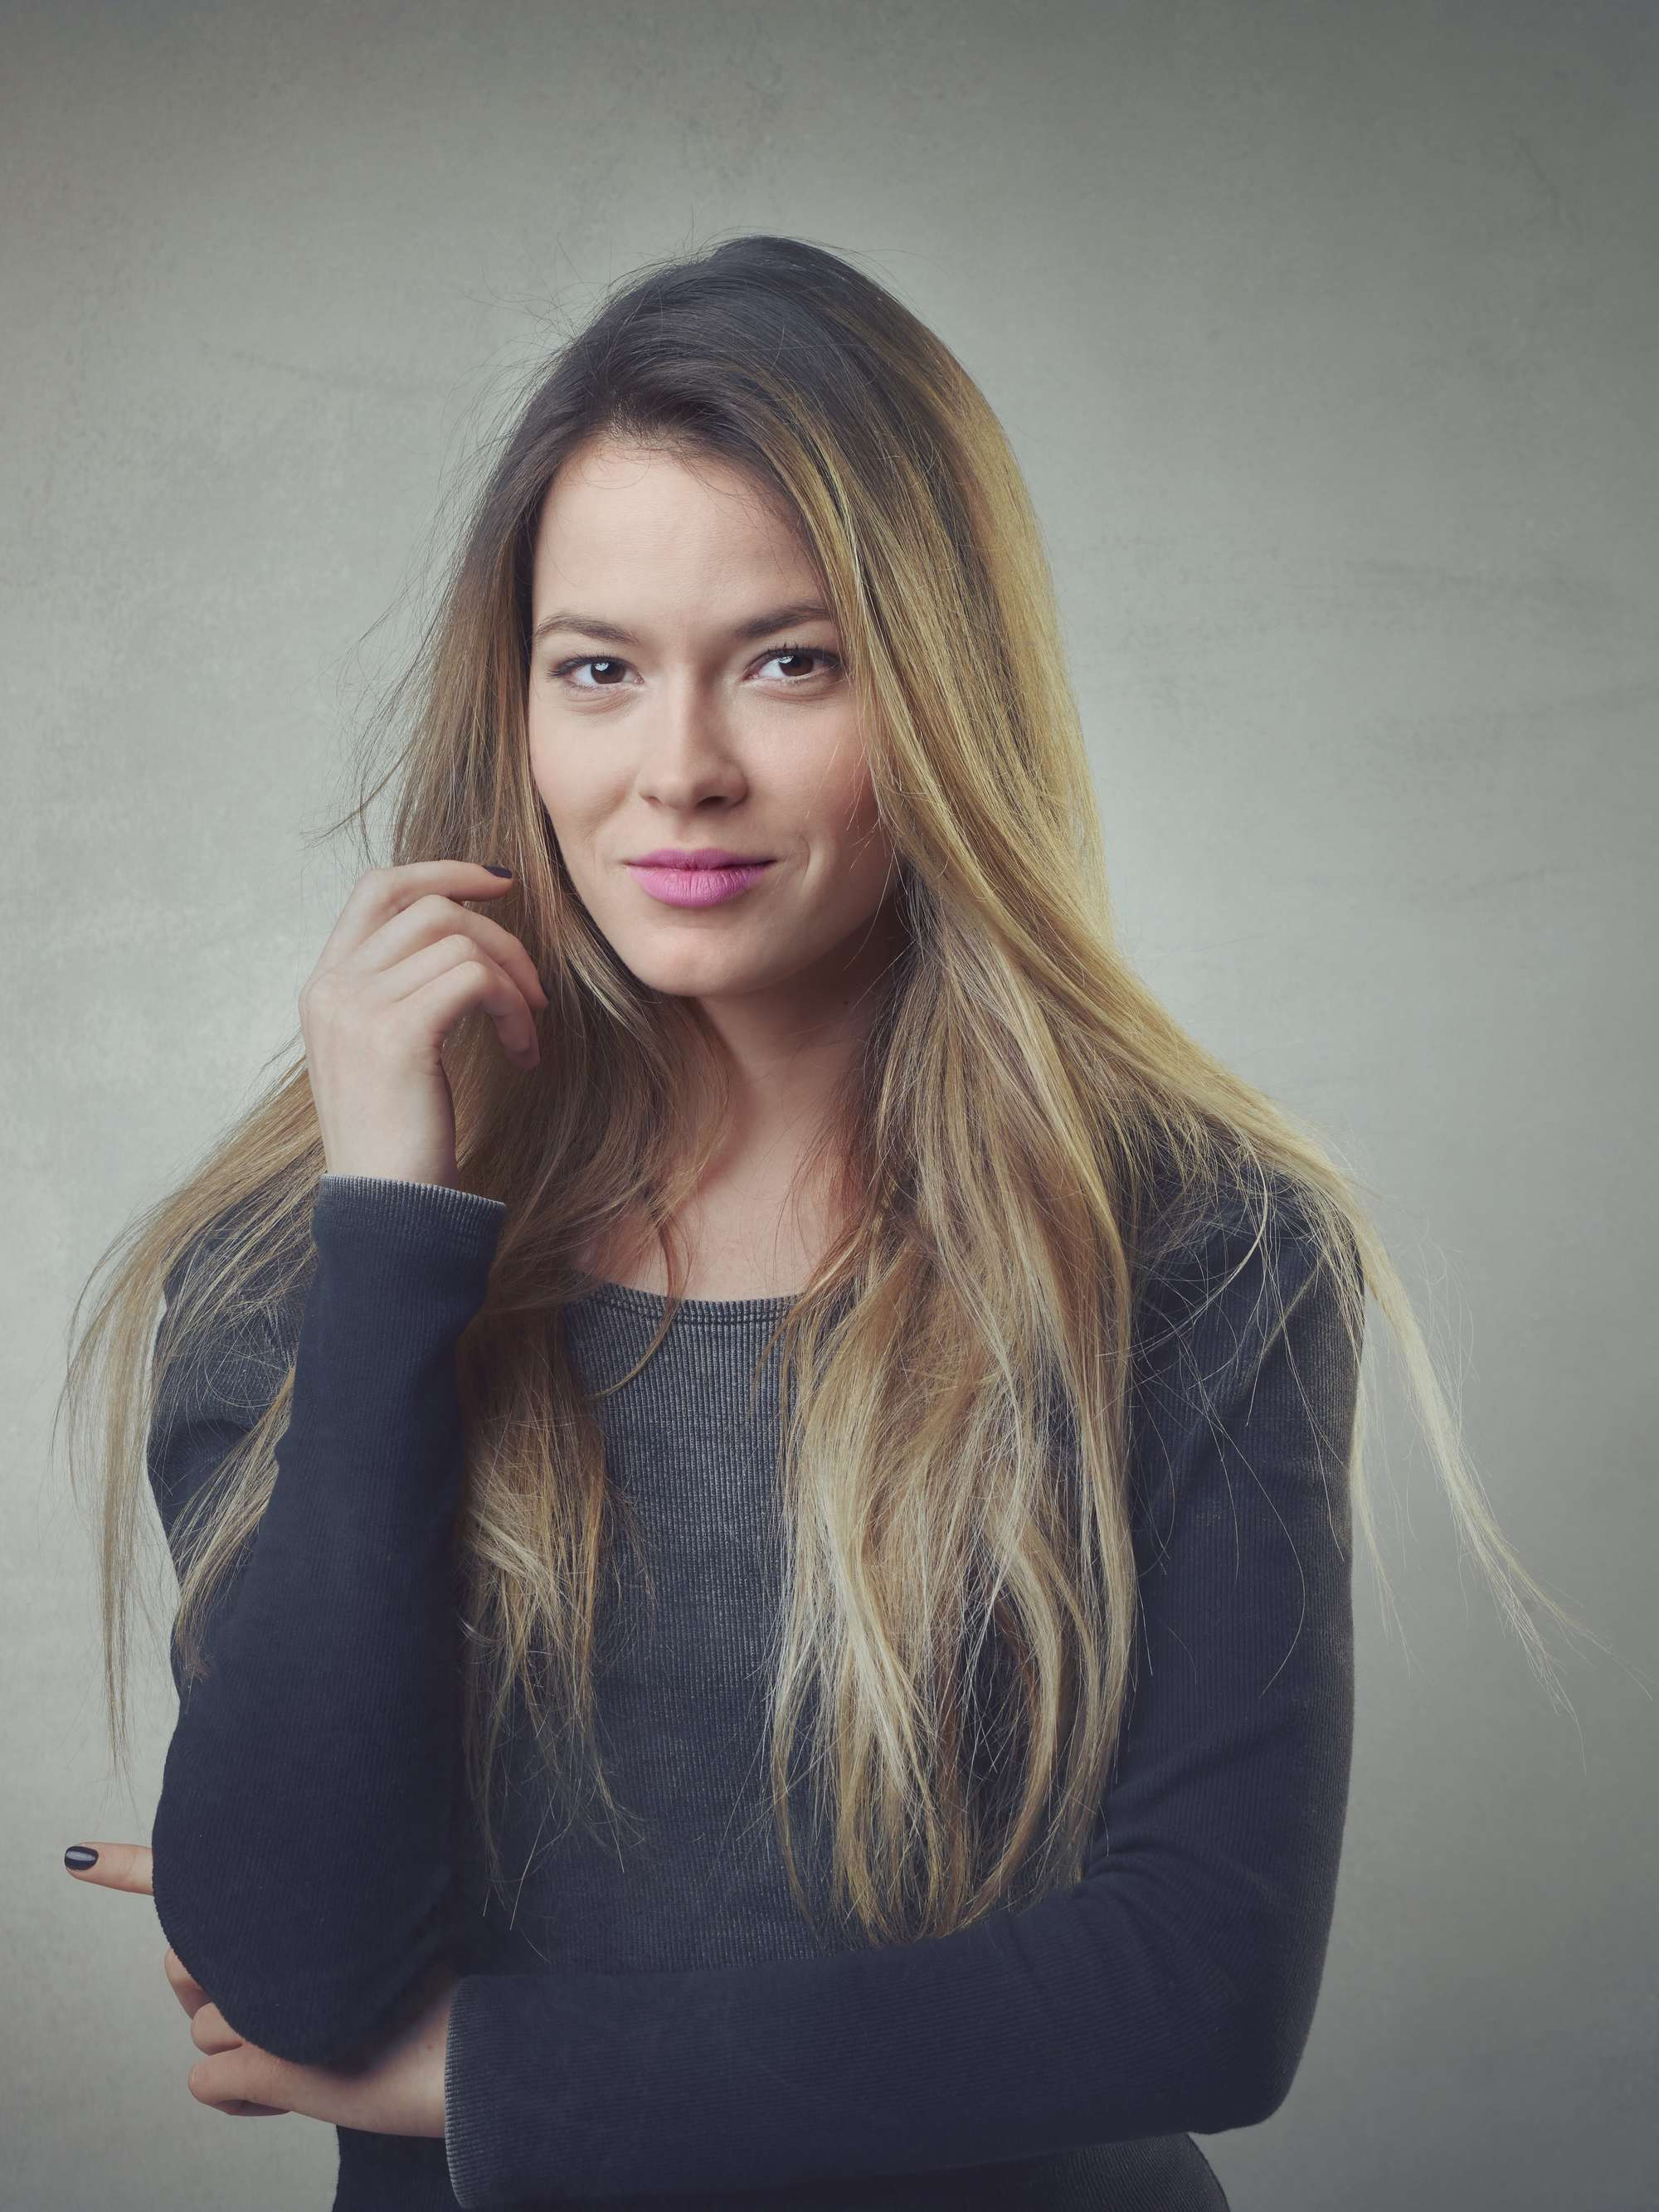 a smiling woman with ombre hair wearing a black sweater